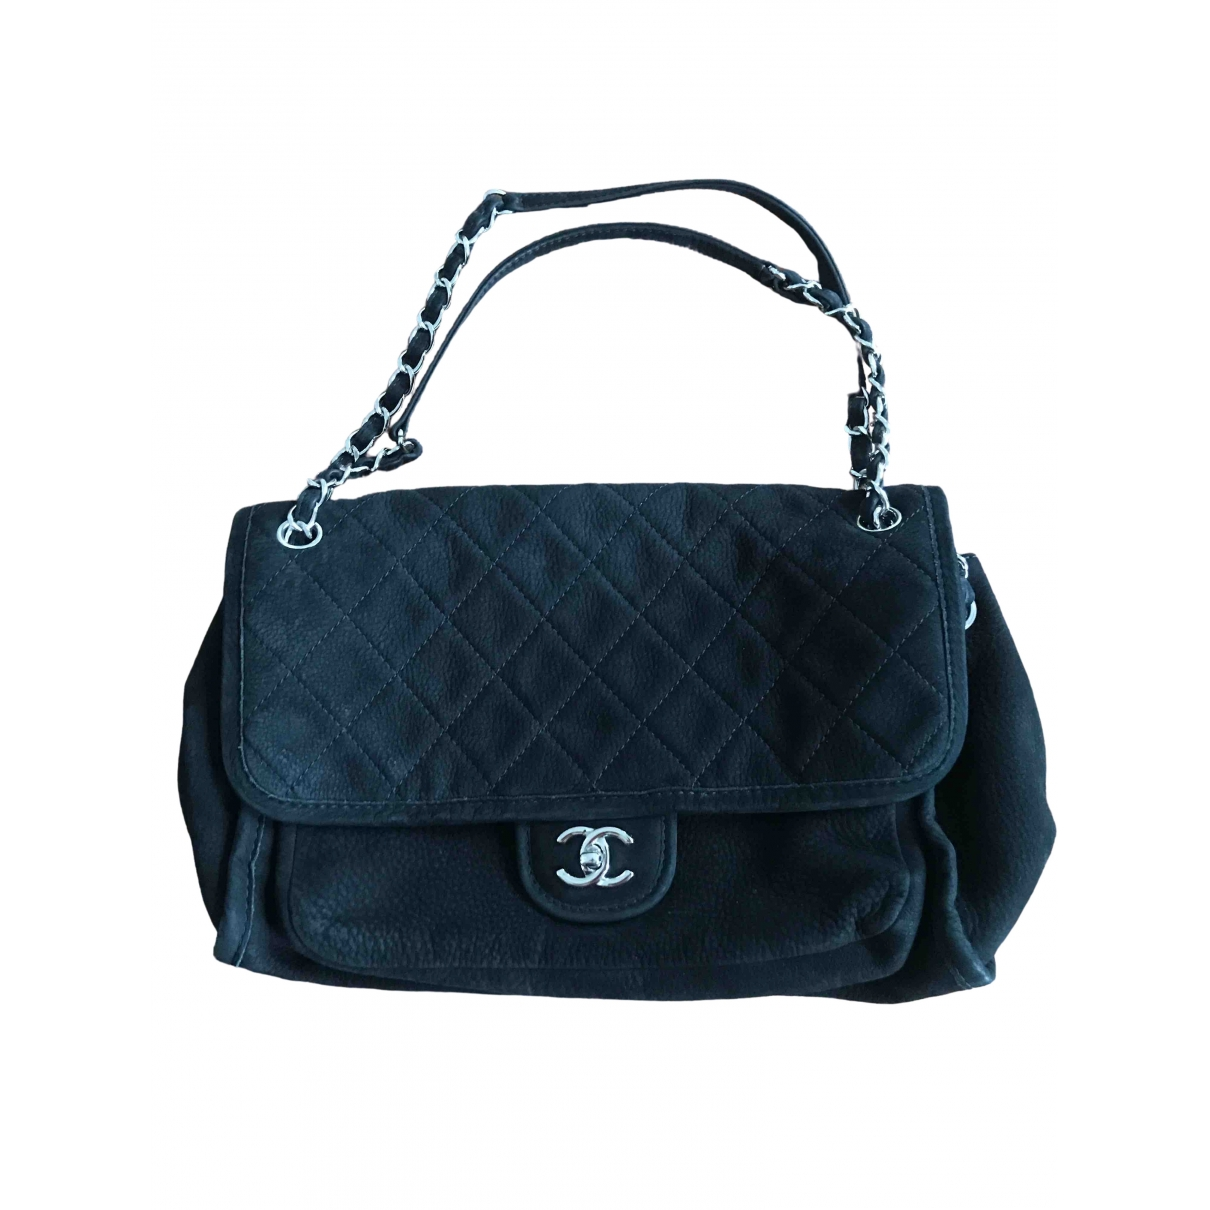 Chanel Timeless/Classique Black Suede handbag for Women \N